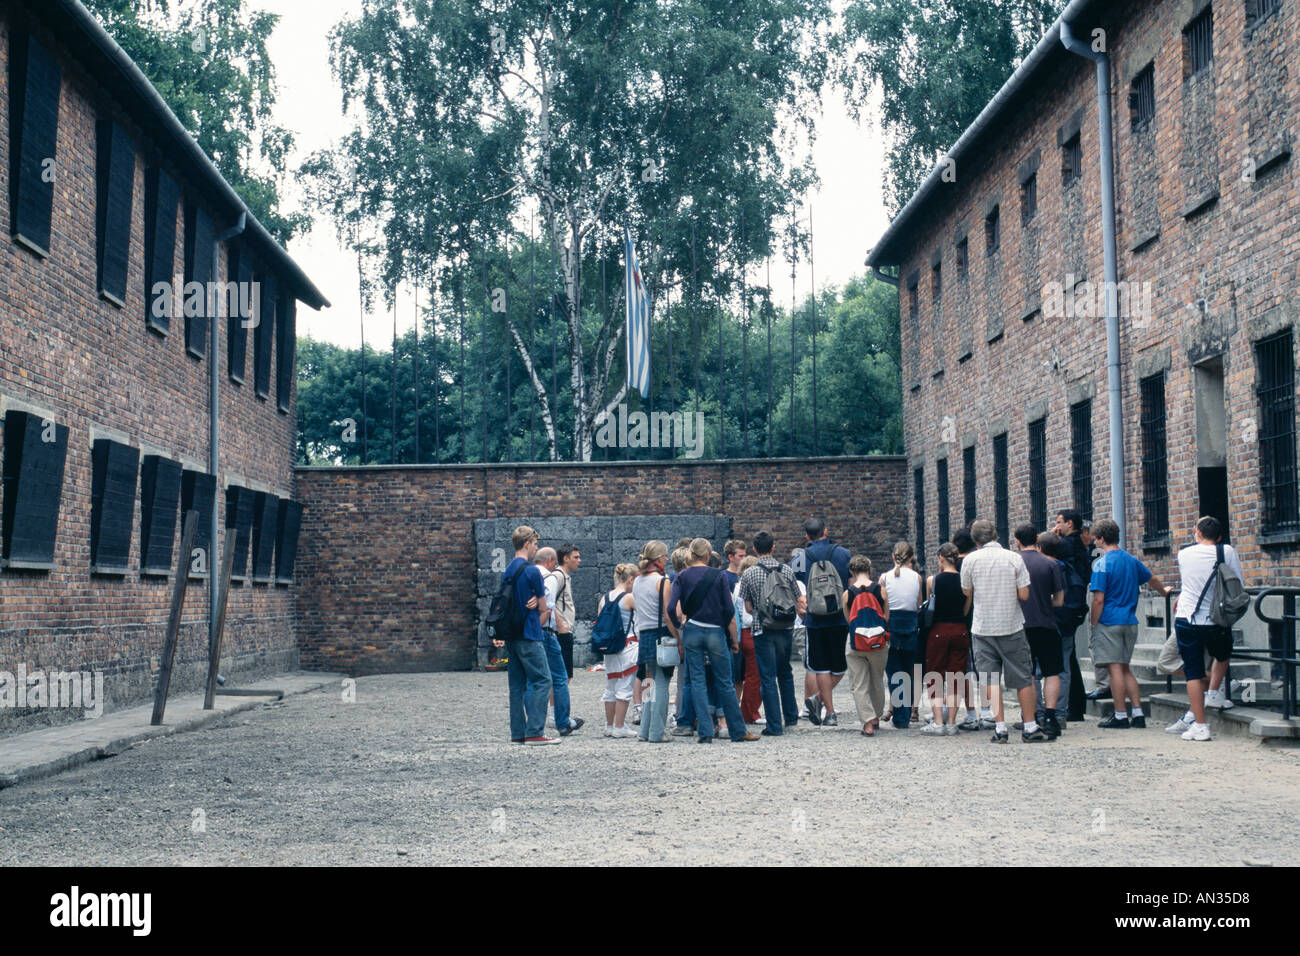 Auschwitz, now a state museum; beyond the tourists is the camp's Wall of Death, a place of floggings and executions Stock Photo